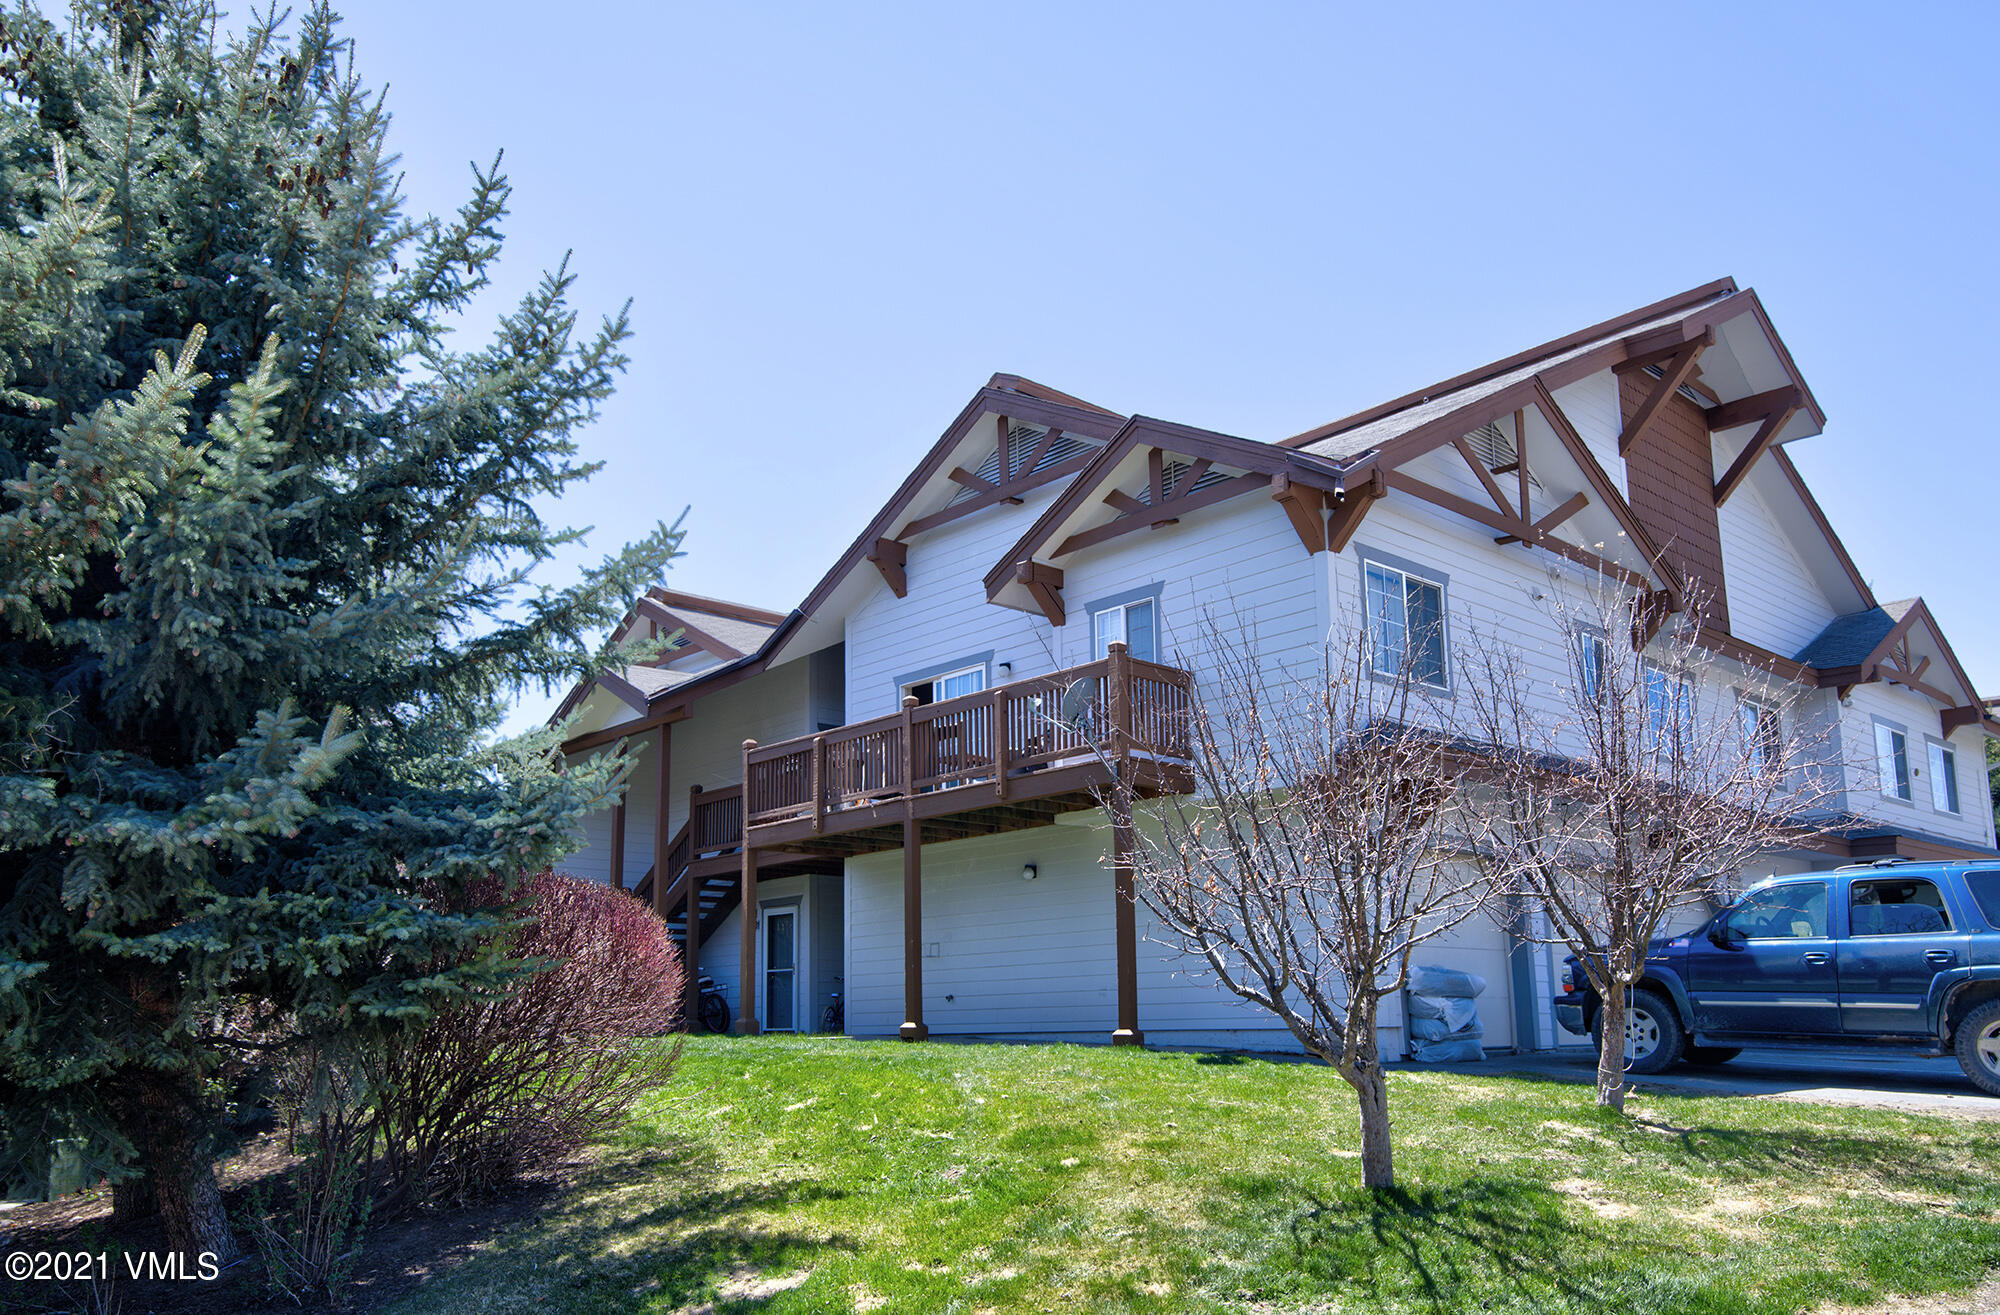 2 Bedrooms 2 full bathrooms condo, high ceilings, 2 balconies one in the living room and one in the master bedroom. In excellent conditions ready to move in.